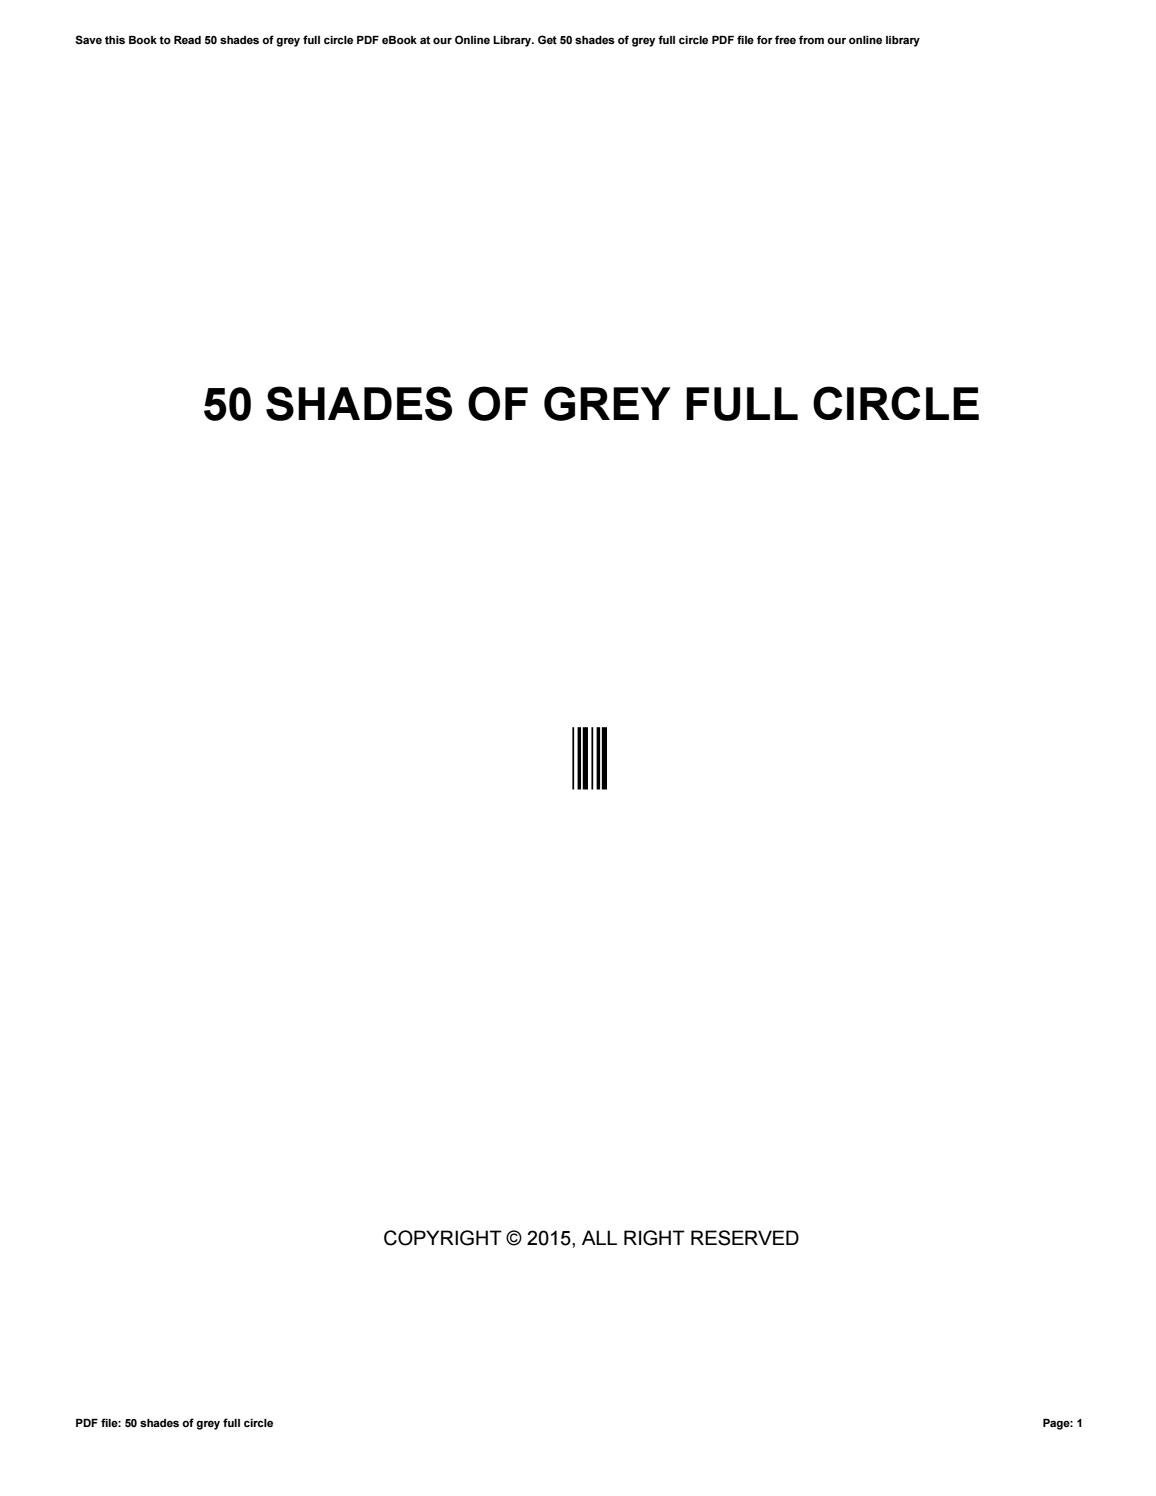 50 shades of gray pdf ebook free download